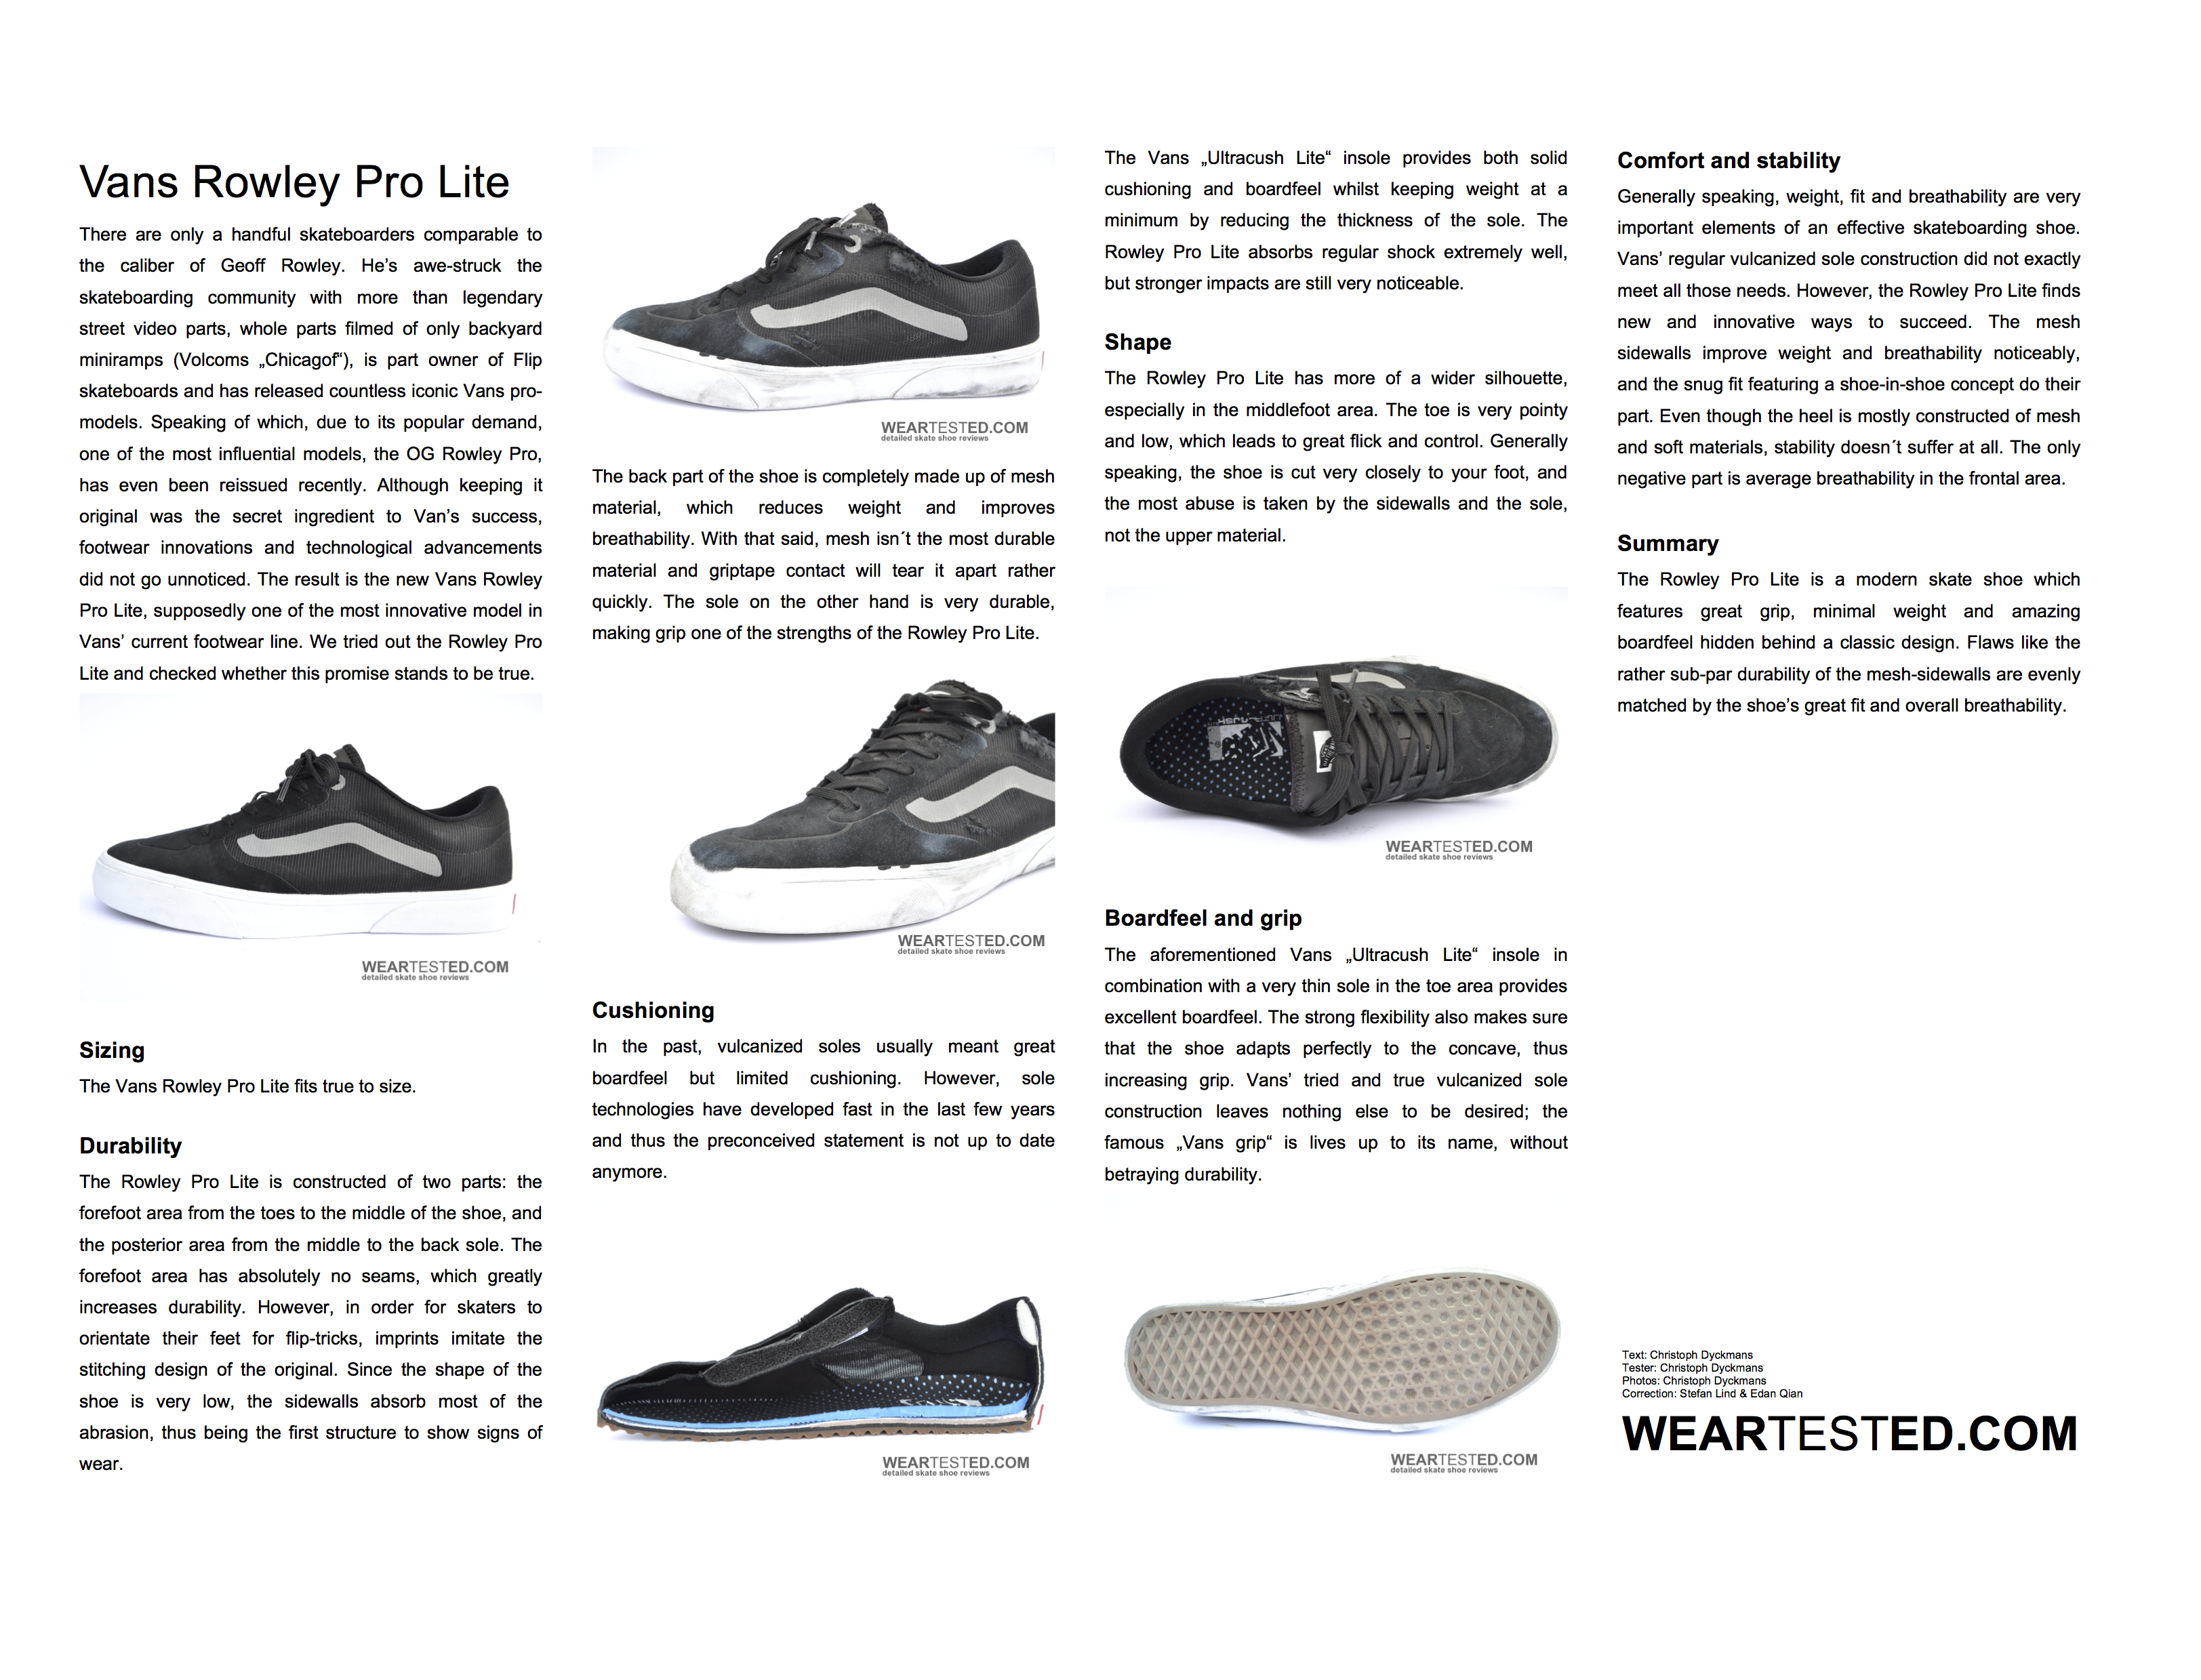 Vans Rowley Pro Lite - Weartested - detailed skate shoe reviews 9bf1d5089